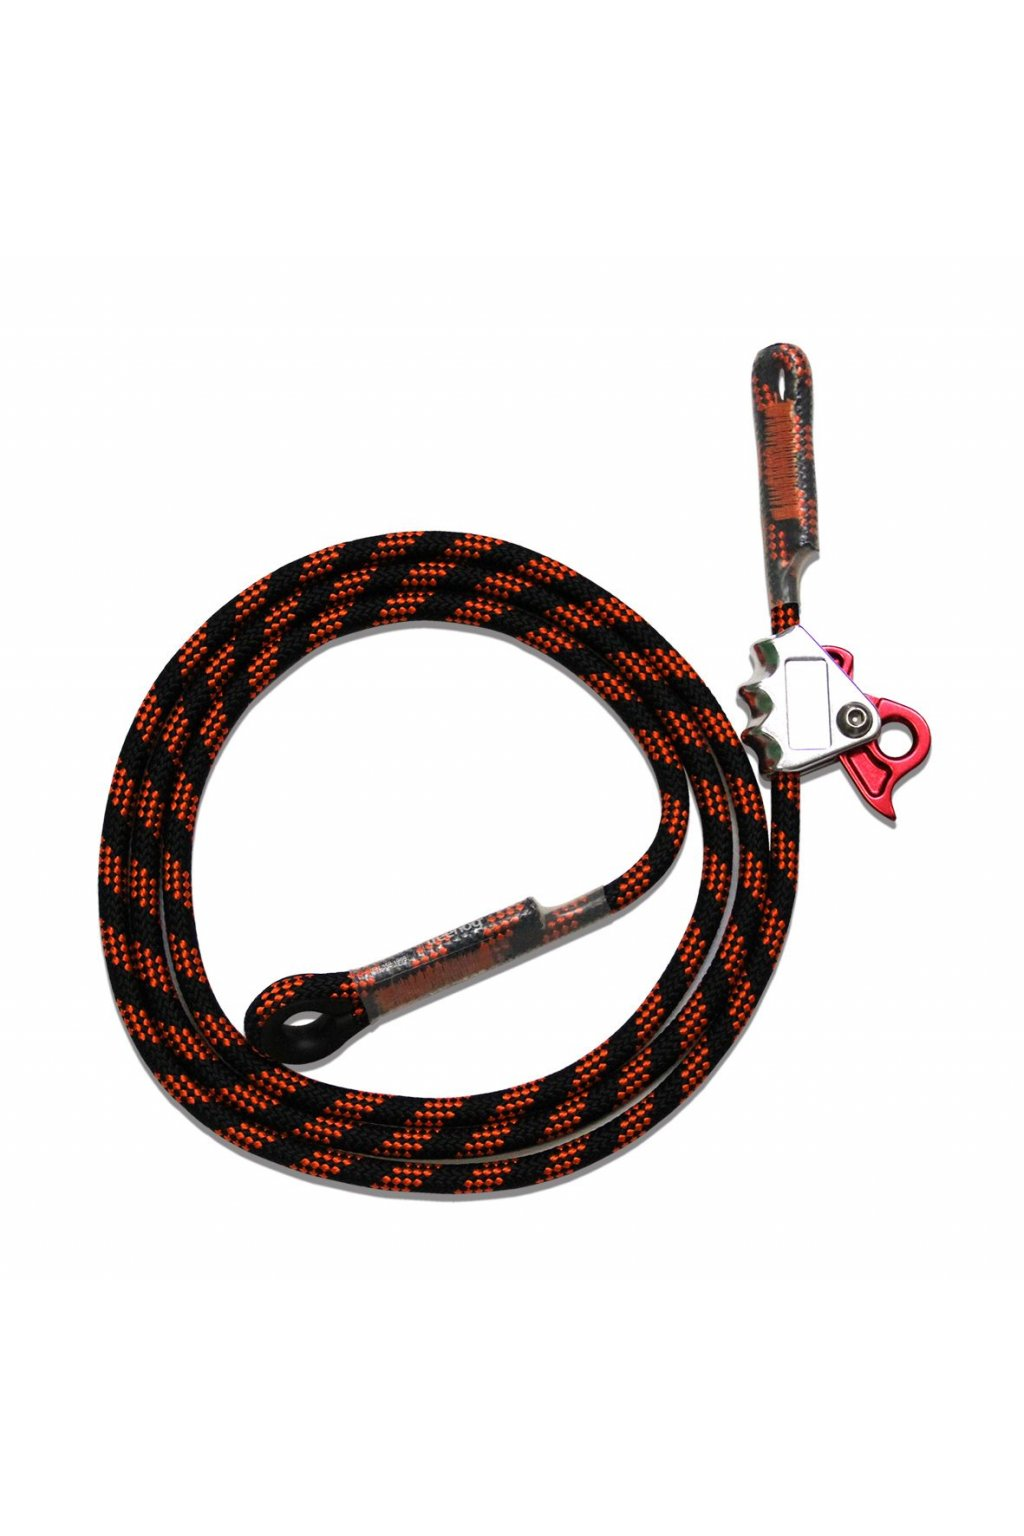 th1175 rope lanyard with adjuster